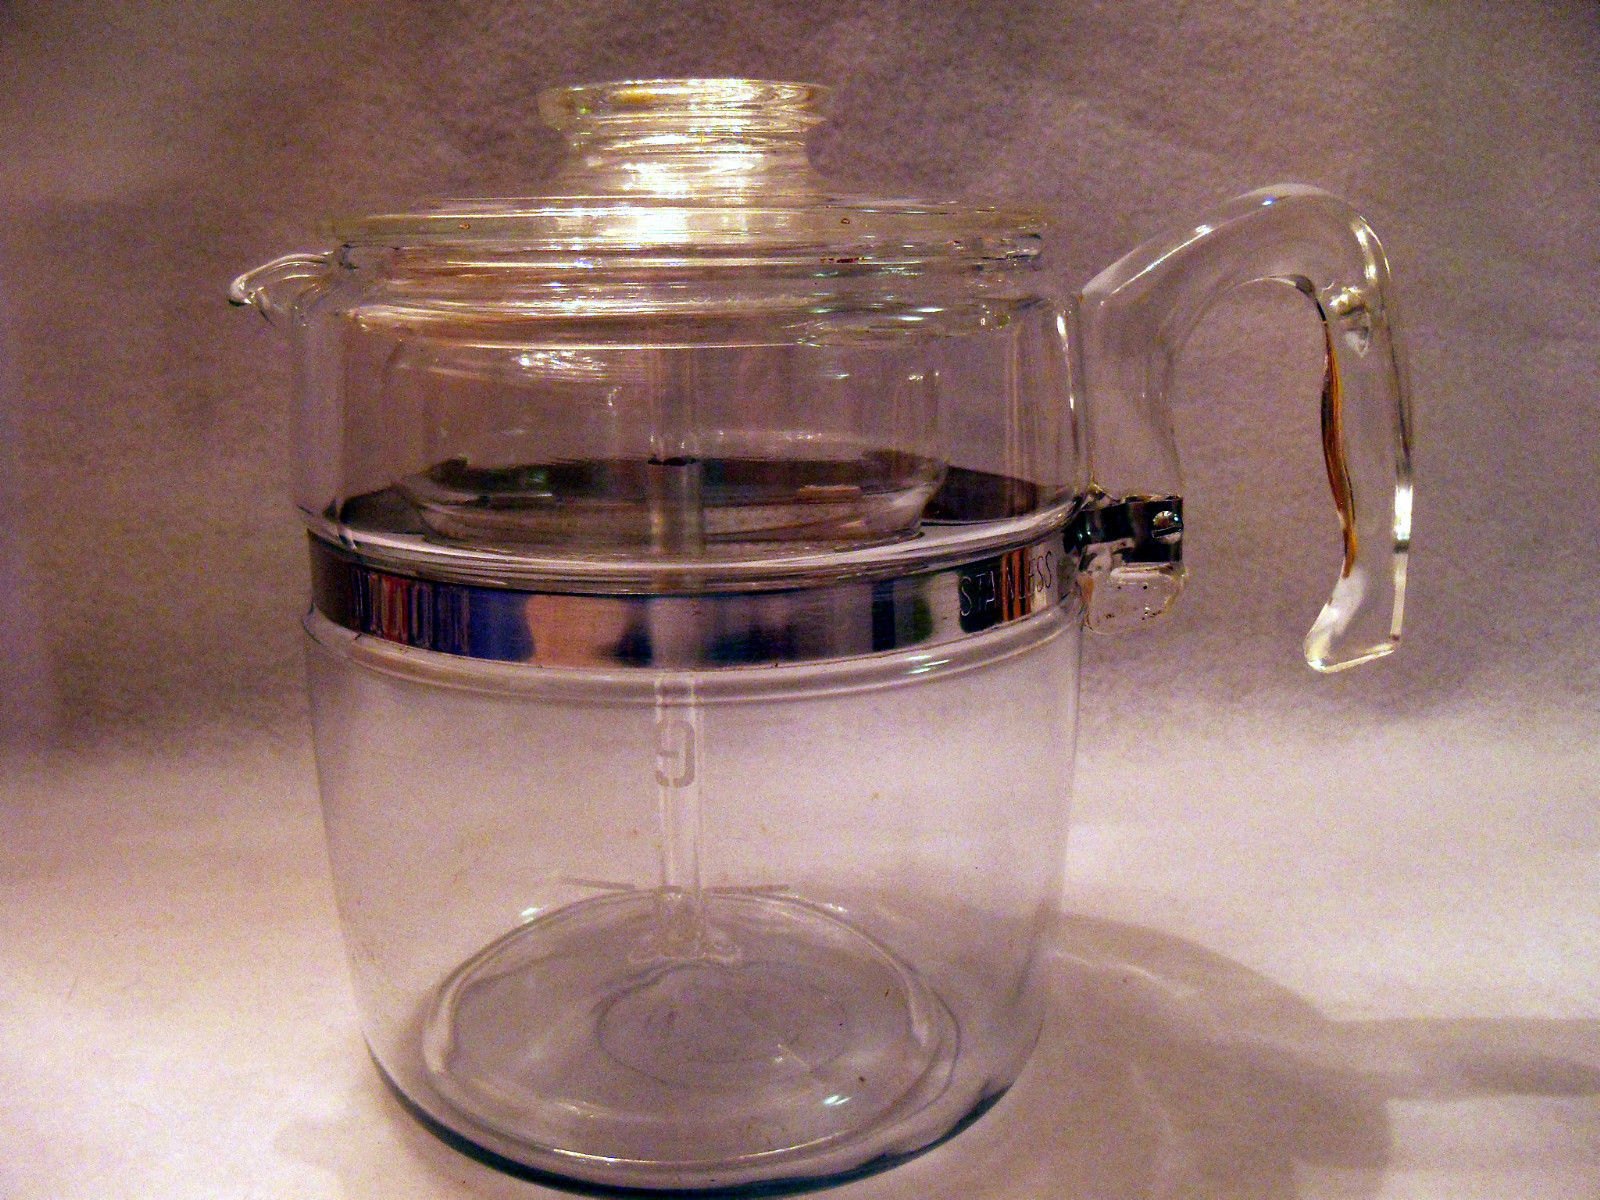 Click image for larger version  Name:flameware coffeepot.JPG Views:191 Size:479.9 KB ID:202940